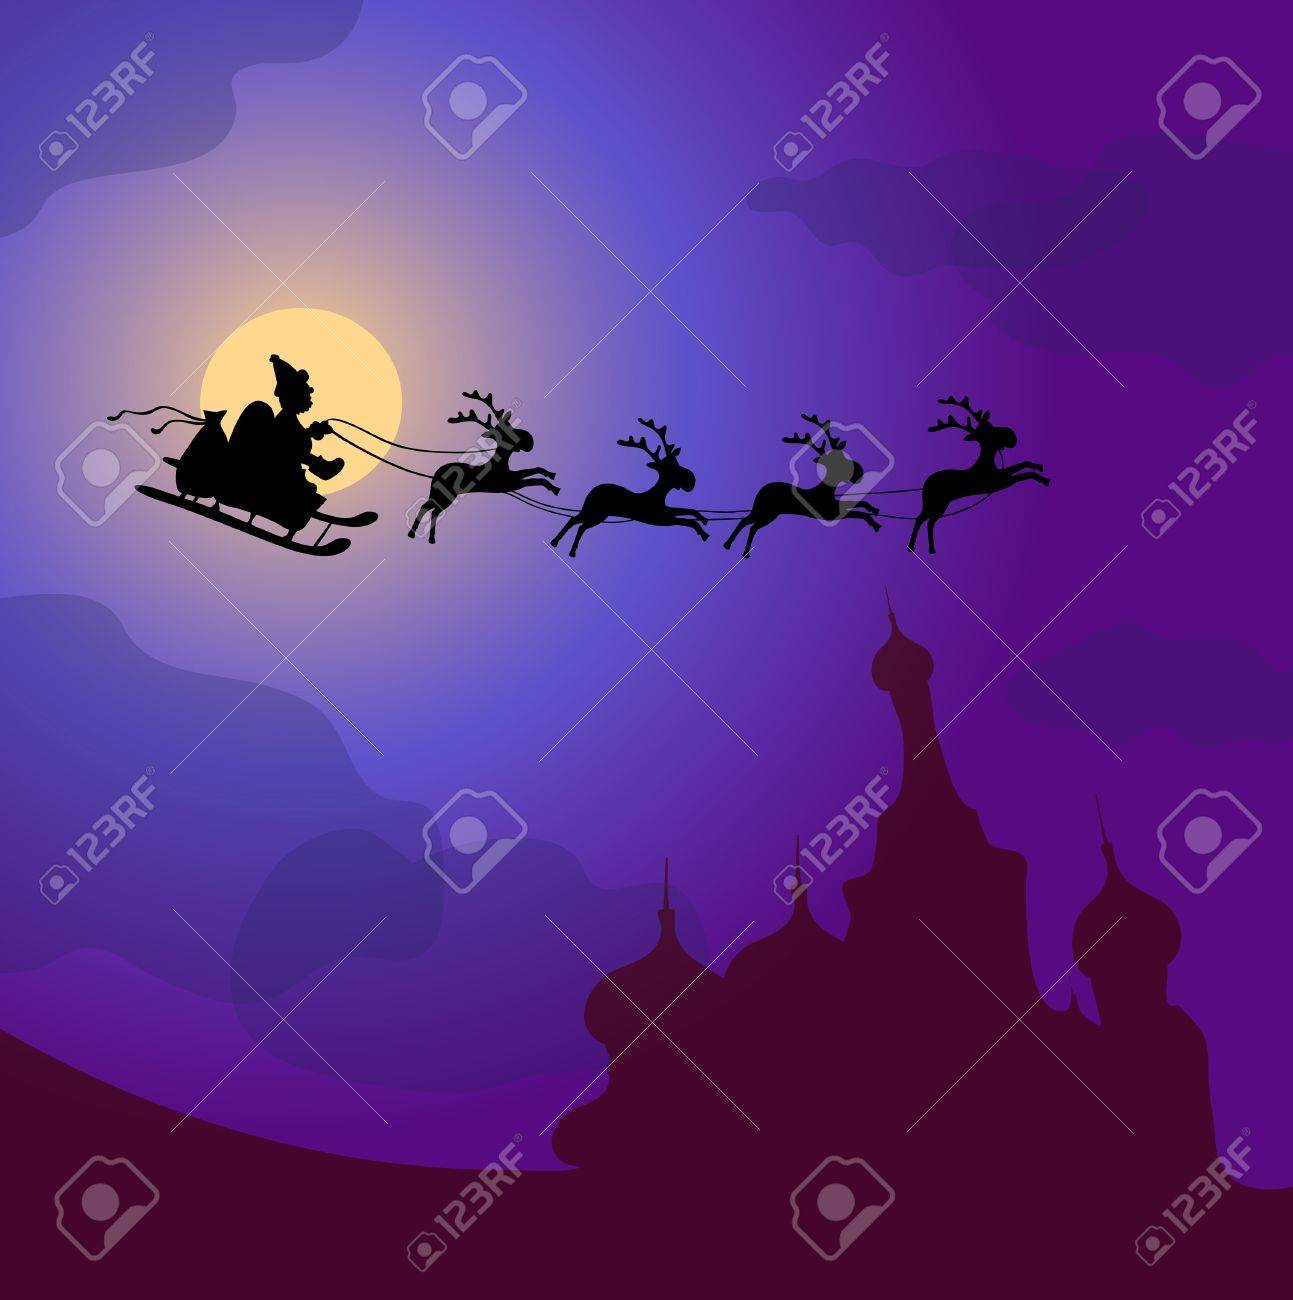 illustration of Santa Claus with reindeers flying over Russia Stock Vector - 9727462